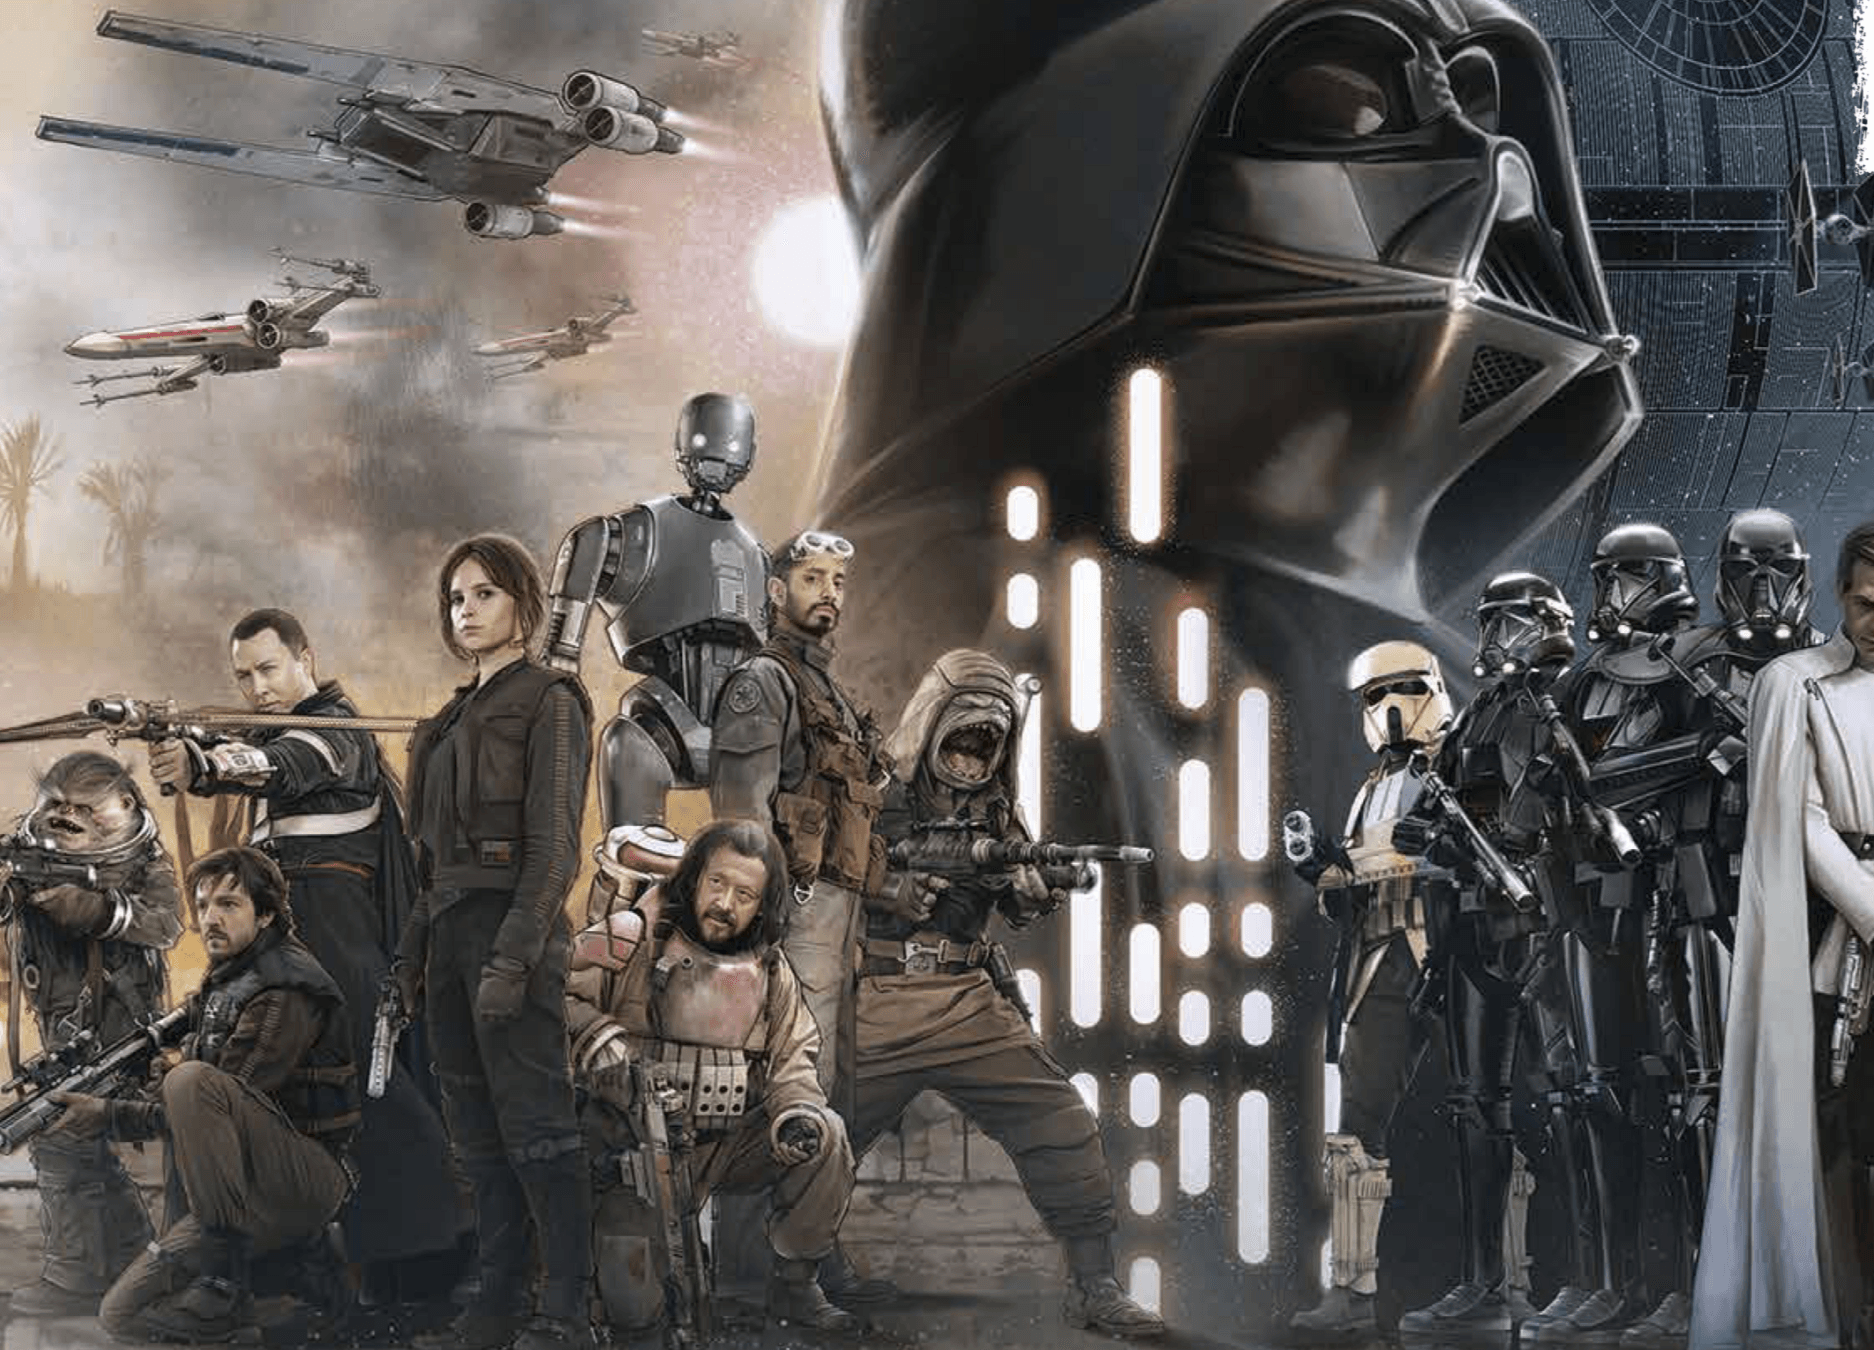 SDCC: New 'Rogue One' Character Revealed